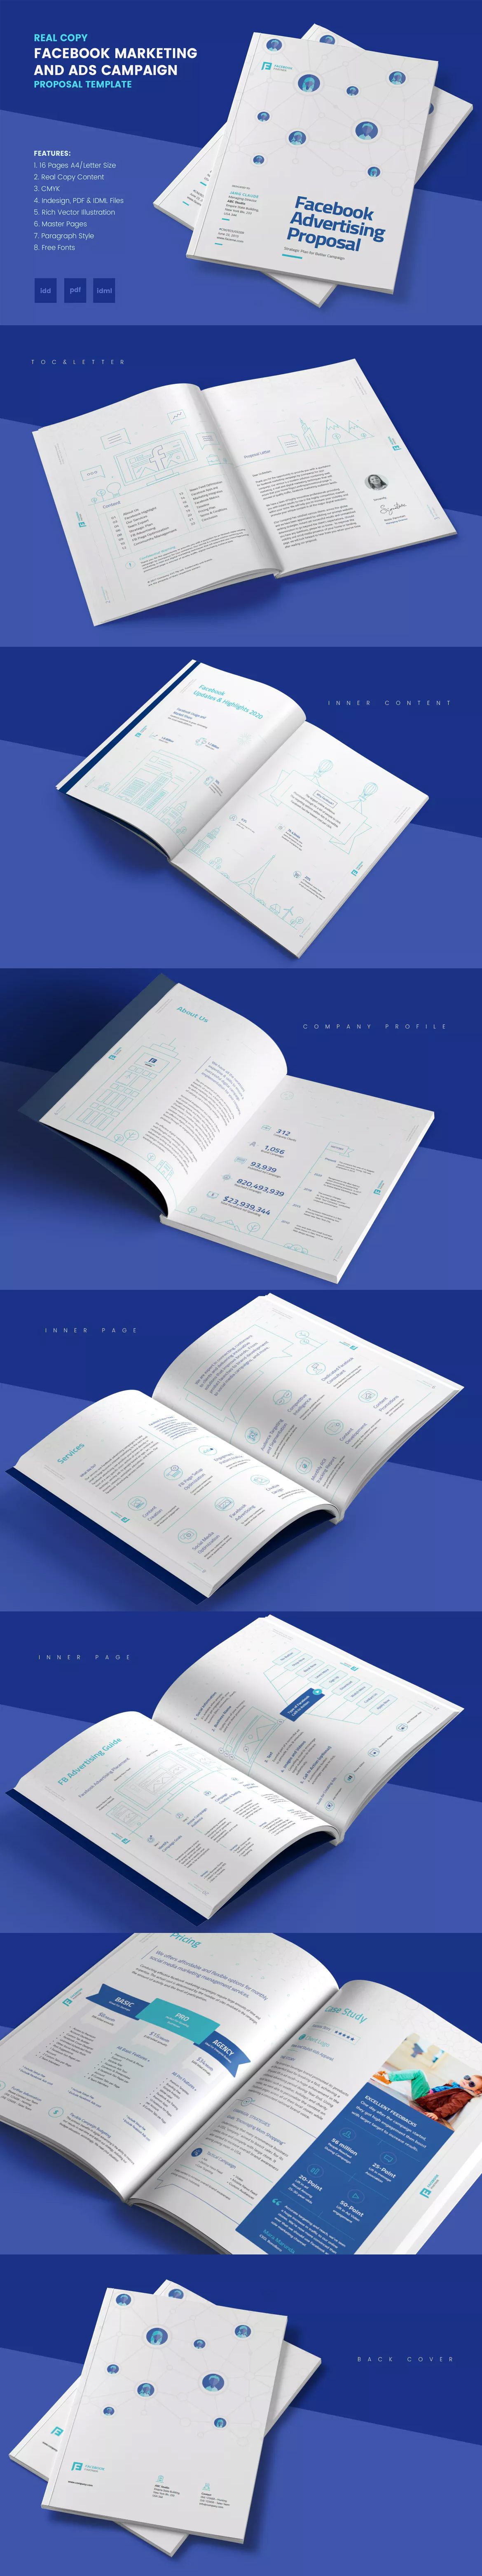 Facebook Marketing Ads Proposal Template Indesign Indd A4 And